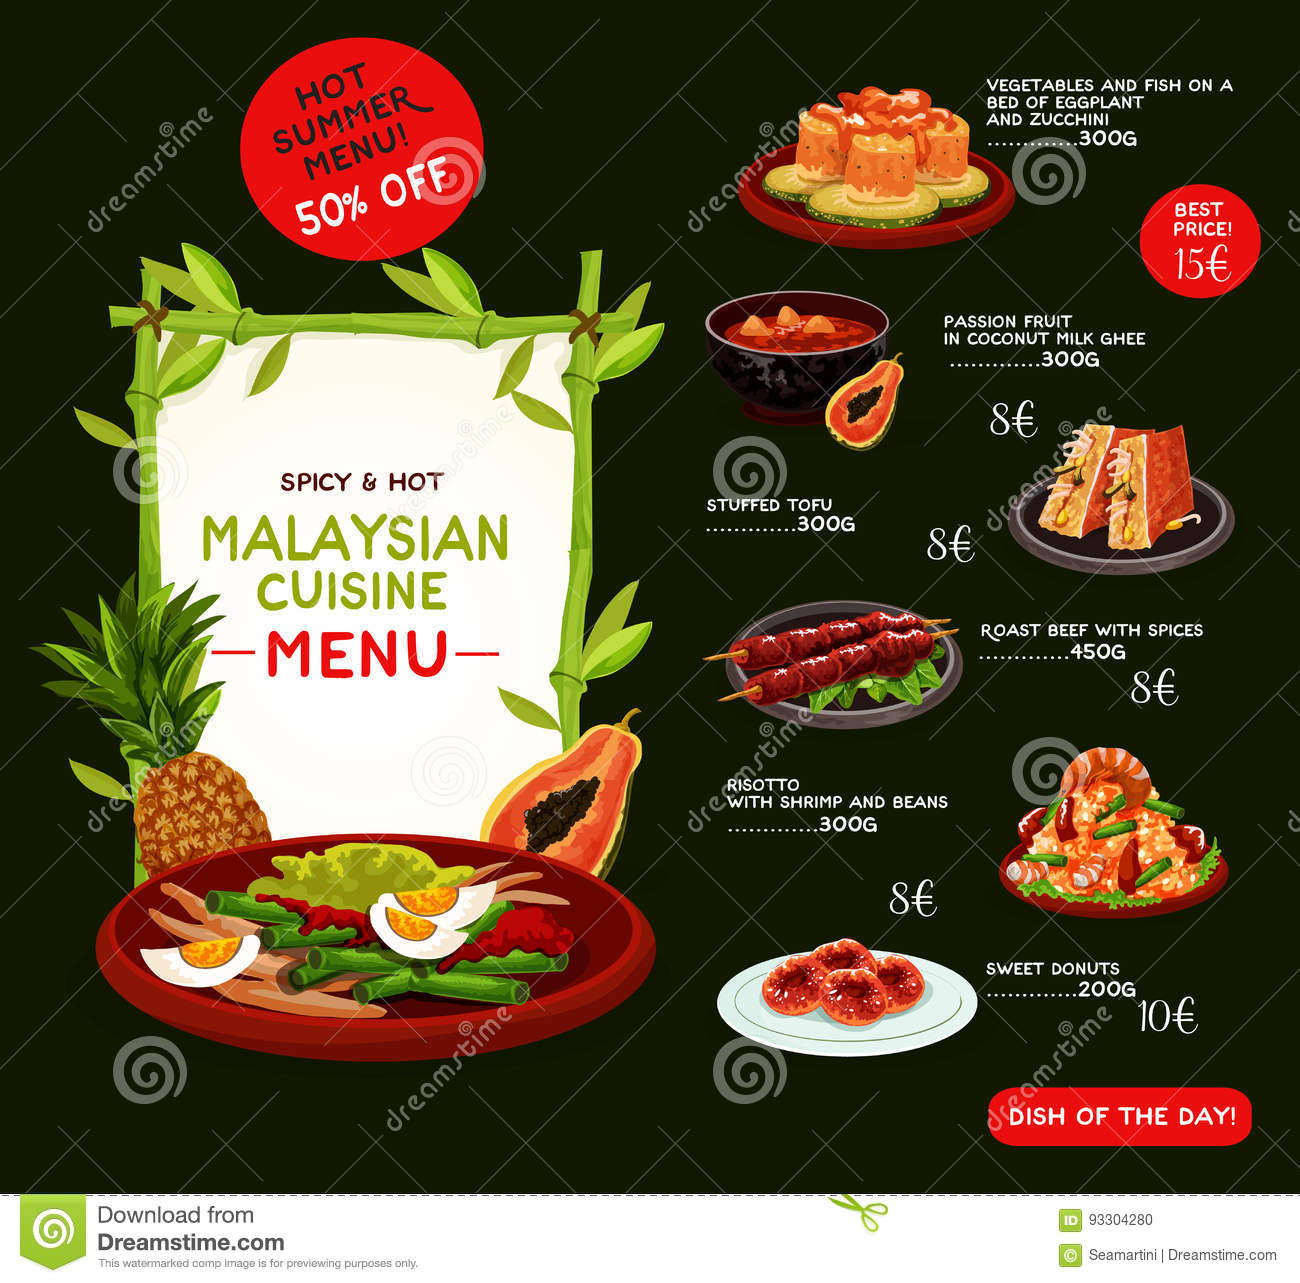 Malaysian cuisine menu template with asian food stock for Akina japanese cuisine menu